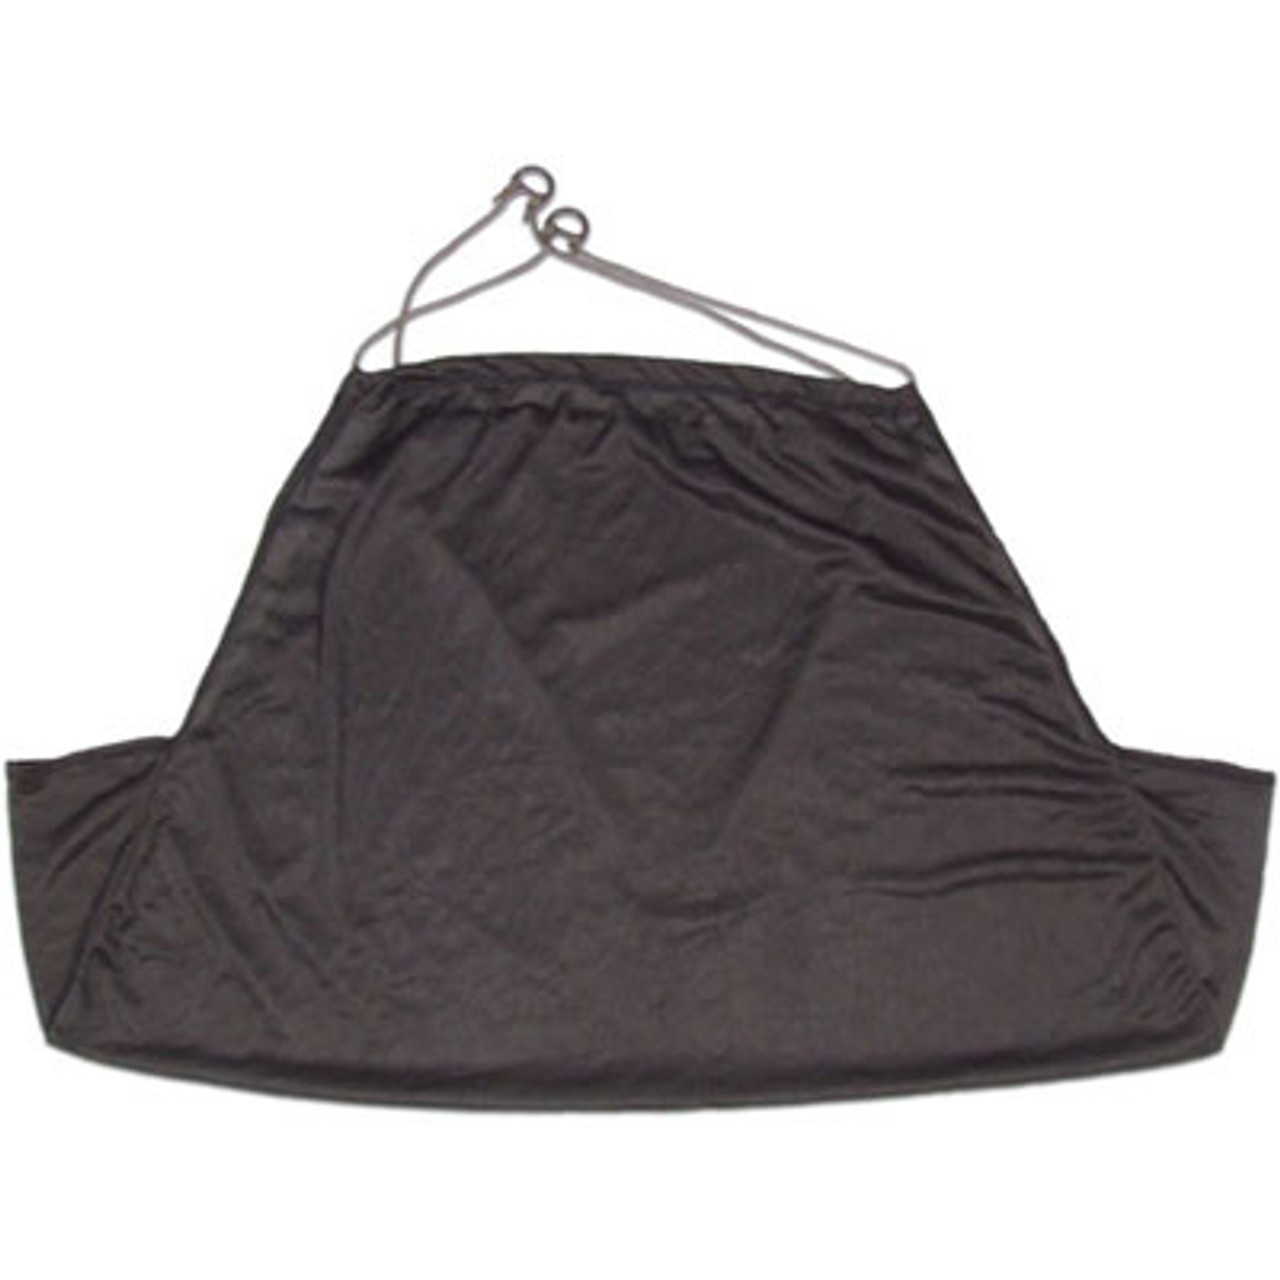 Gardner Multi Species Weigh Sling